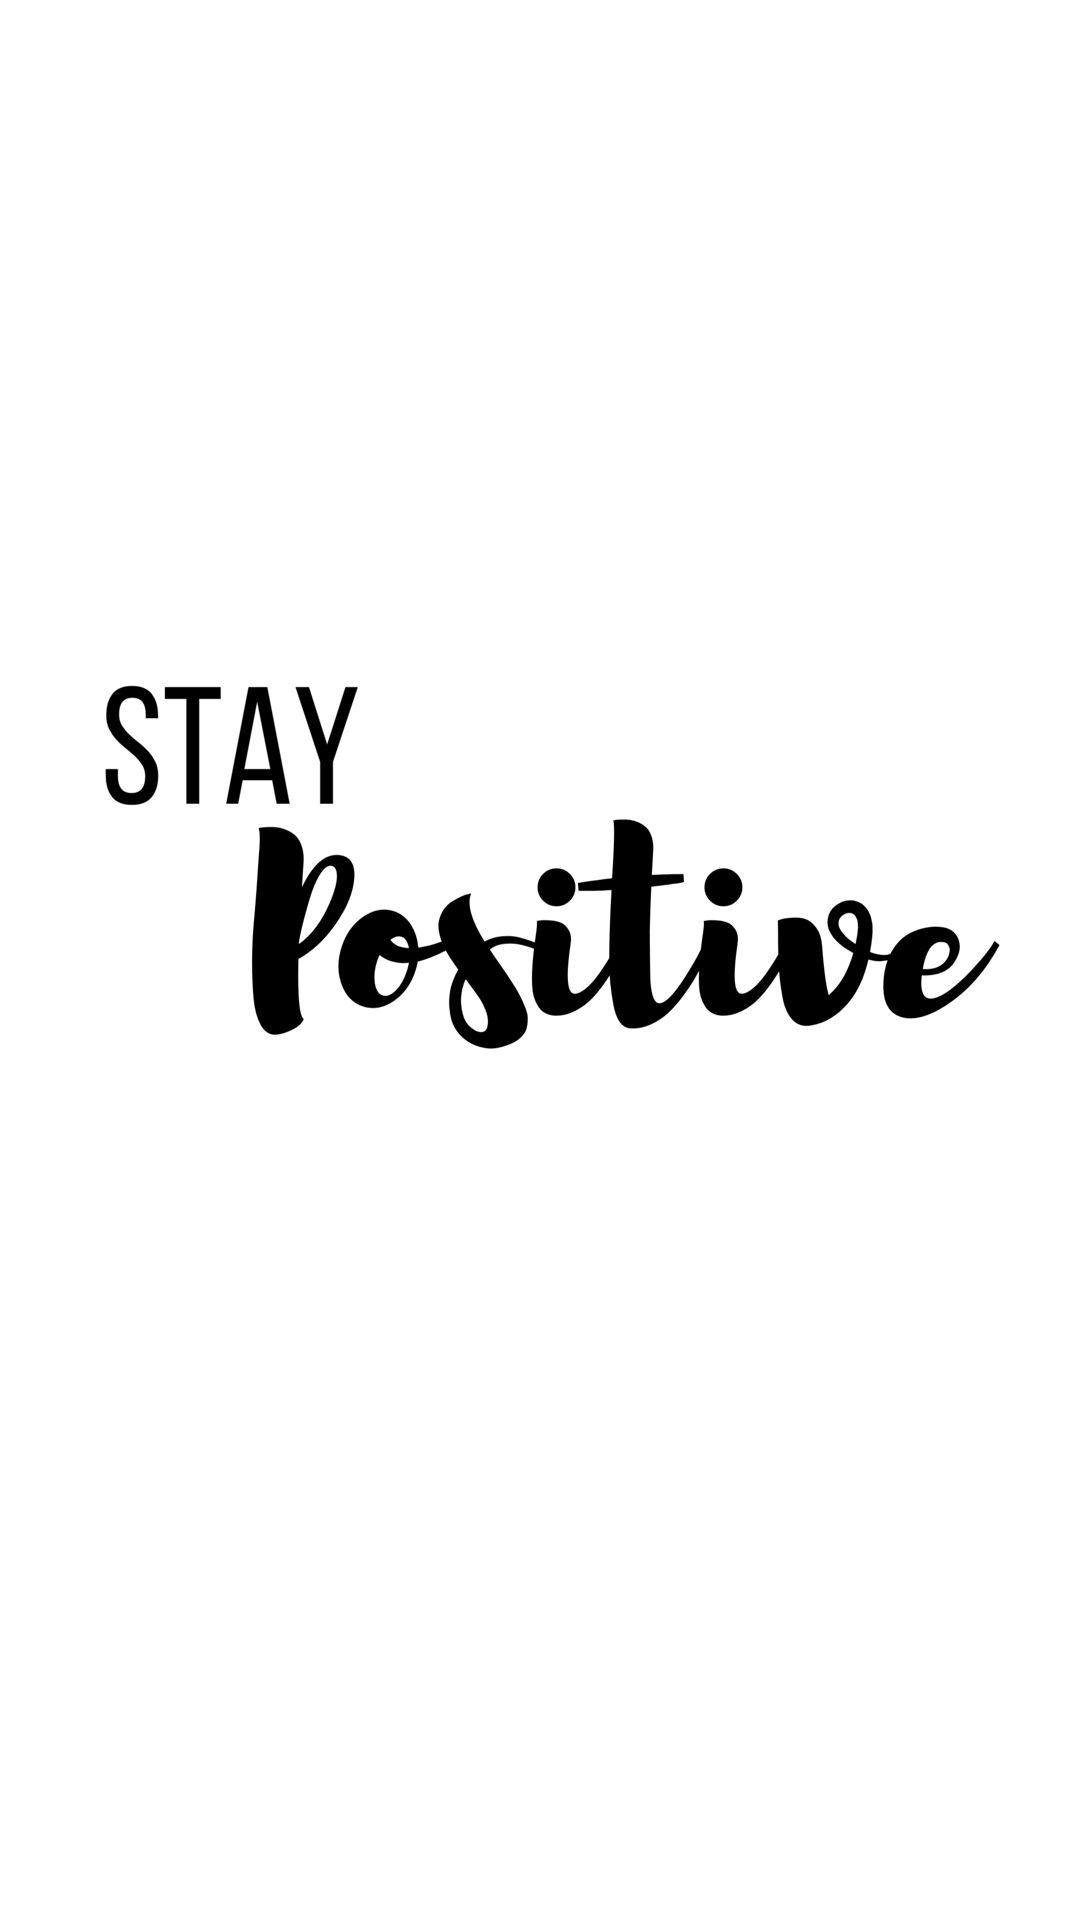 Stay Positive In 2019 Positive Wallpapers Staying